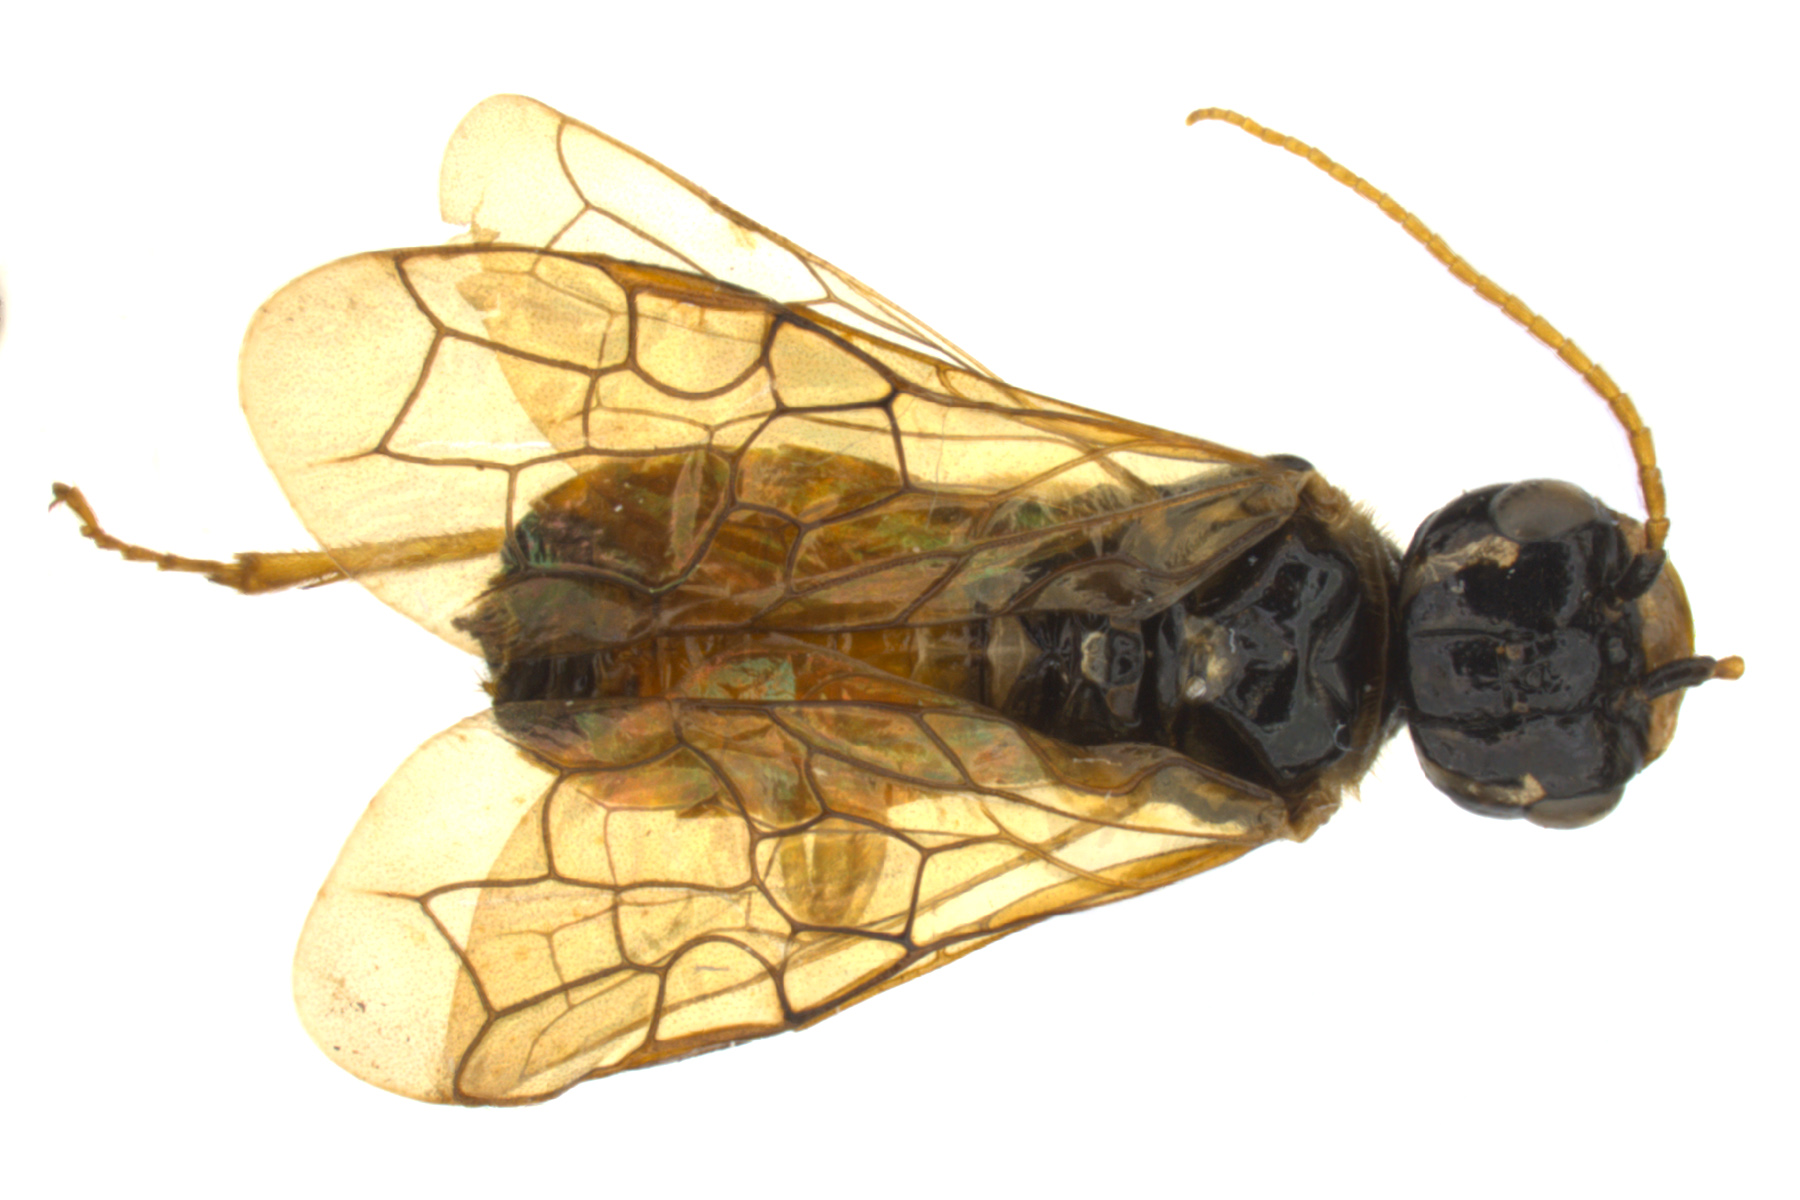 Pamphilius pacificus female dorsal habitus; photo by J. Orr, WSDA